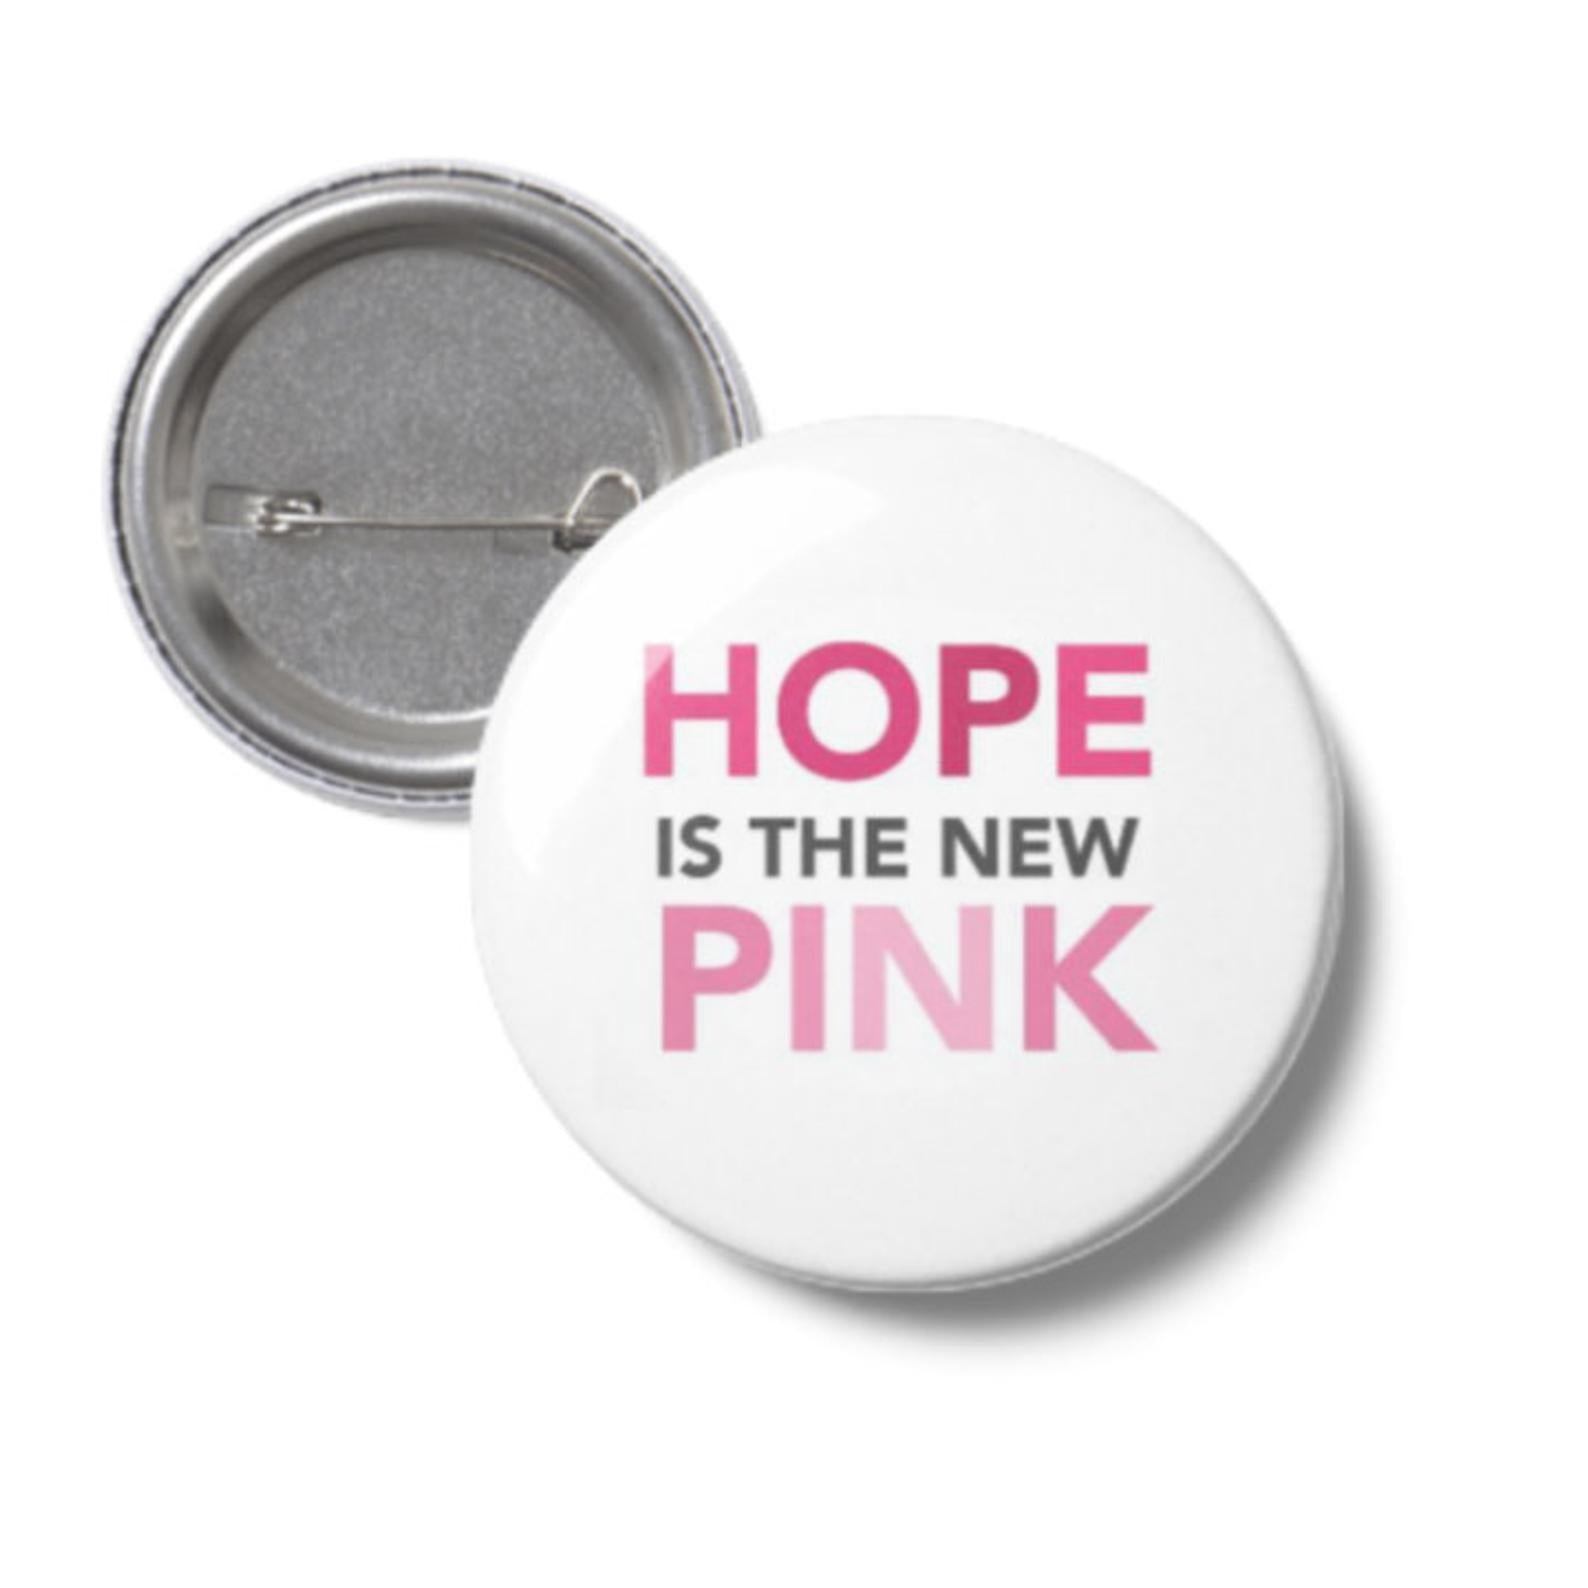 Breast Cancer Awareness - Hope Is The New Pink Pin Button